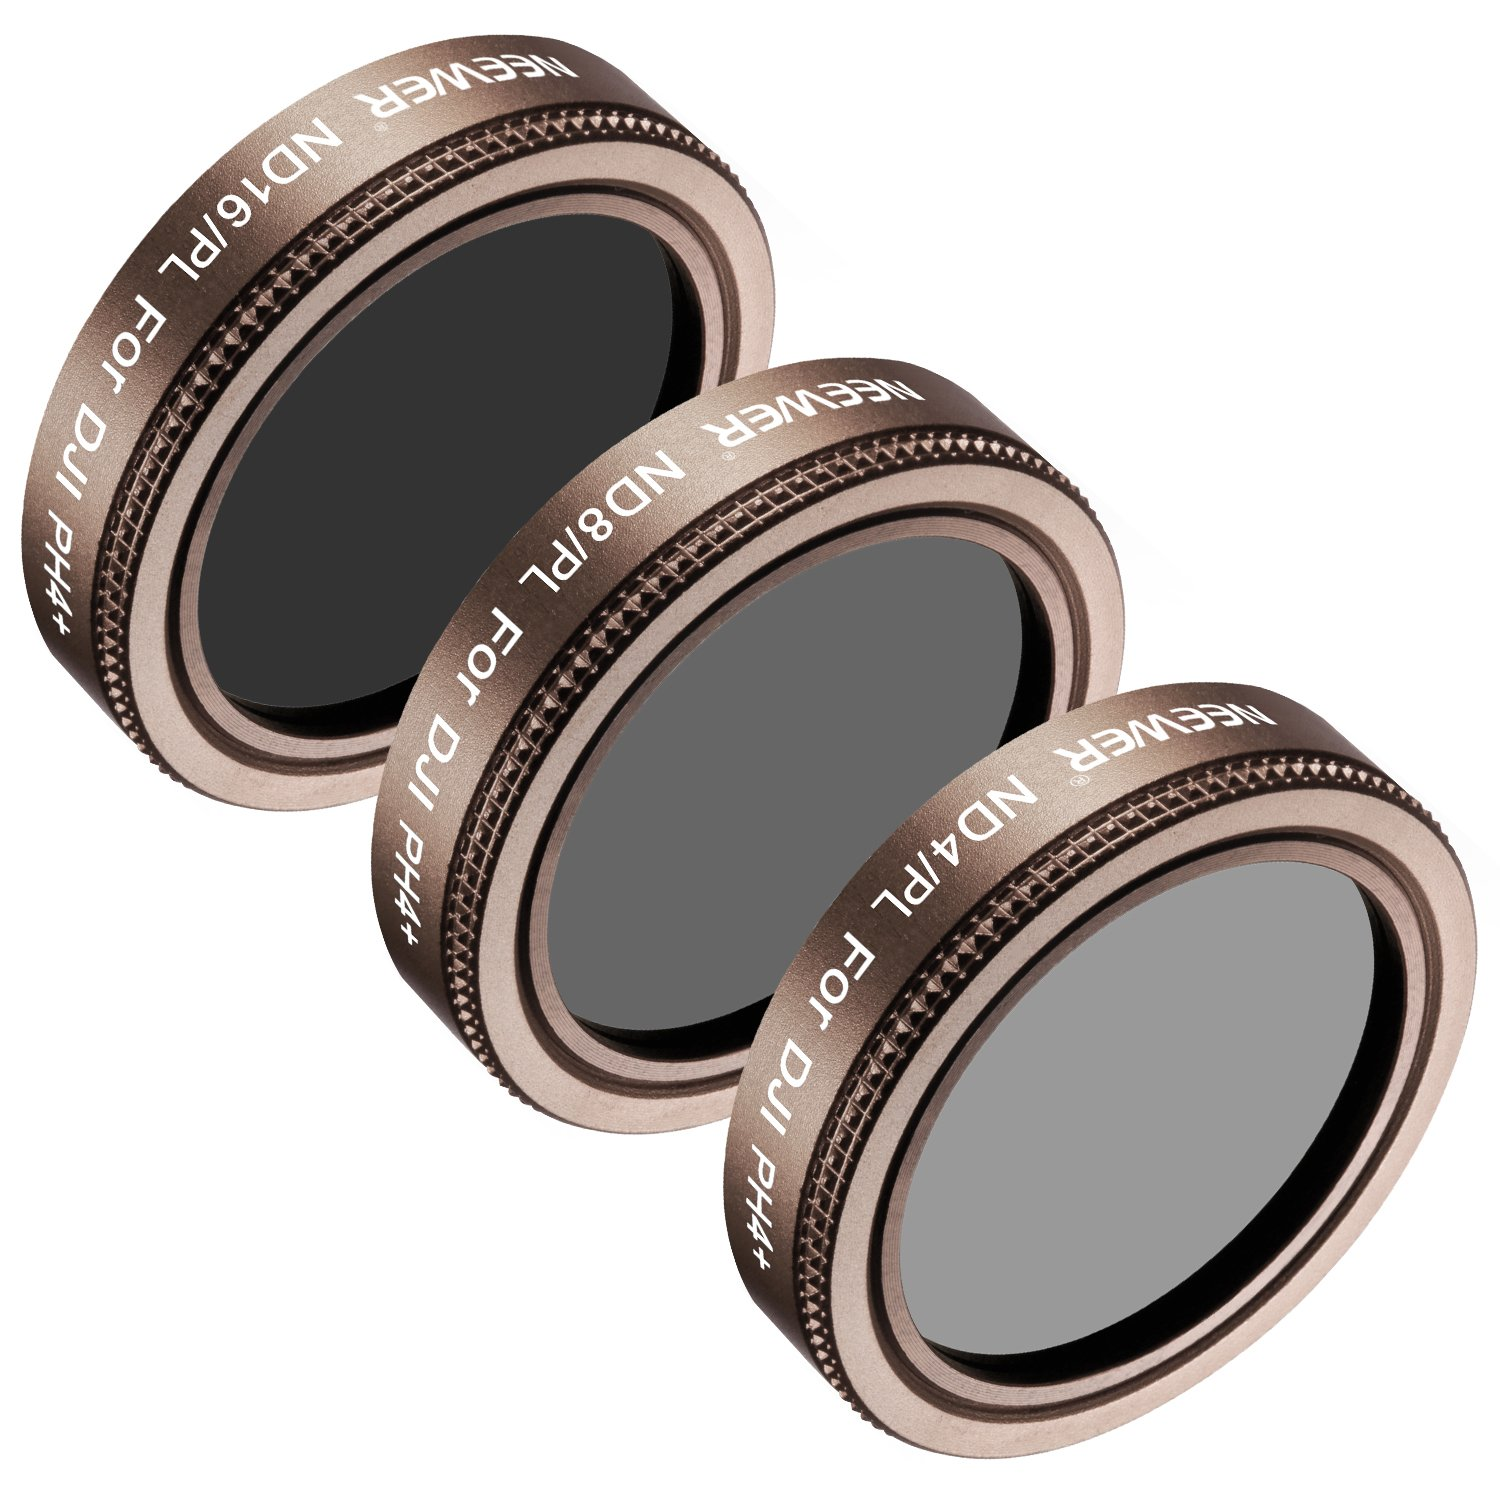 ND4//PL ND8 ND16//PL Neewer 6 Pieces Pro Lens Filter Kit for DJI Mavic Air Drone Quadcopter Includes: ND4 Made of Multi Coated Waterproof Aluminum Alloy Frame Optical Glass Gold ND8//PL ND16